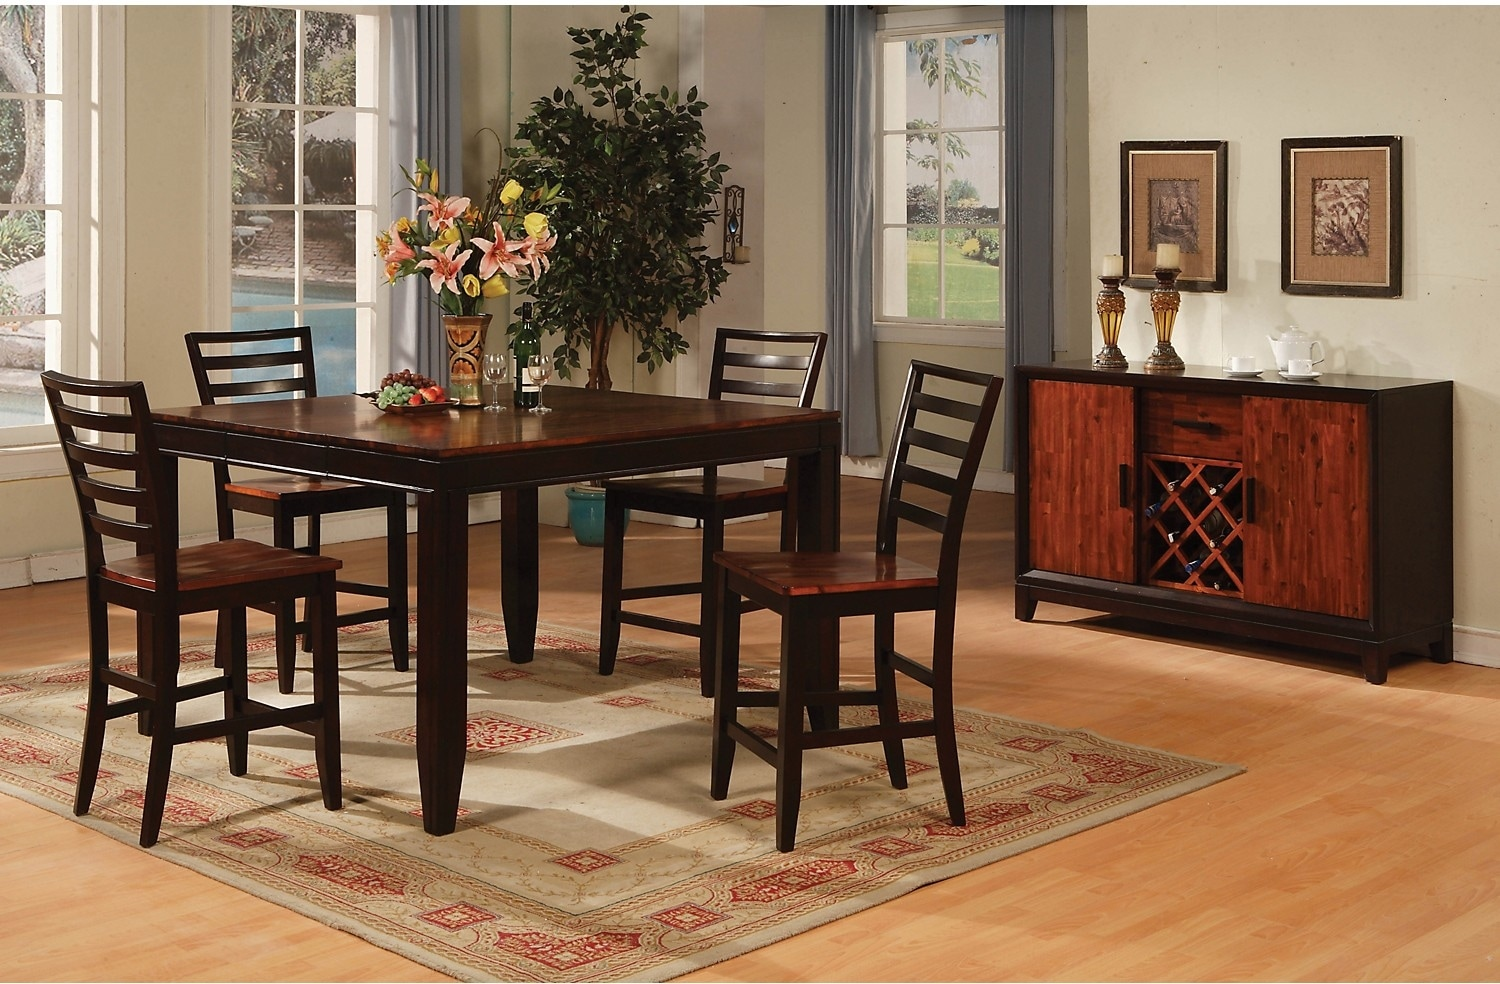 Dining Room Furniture - Zara 5-Piece Counter Height Dining Package